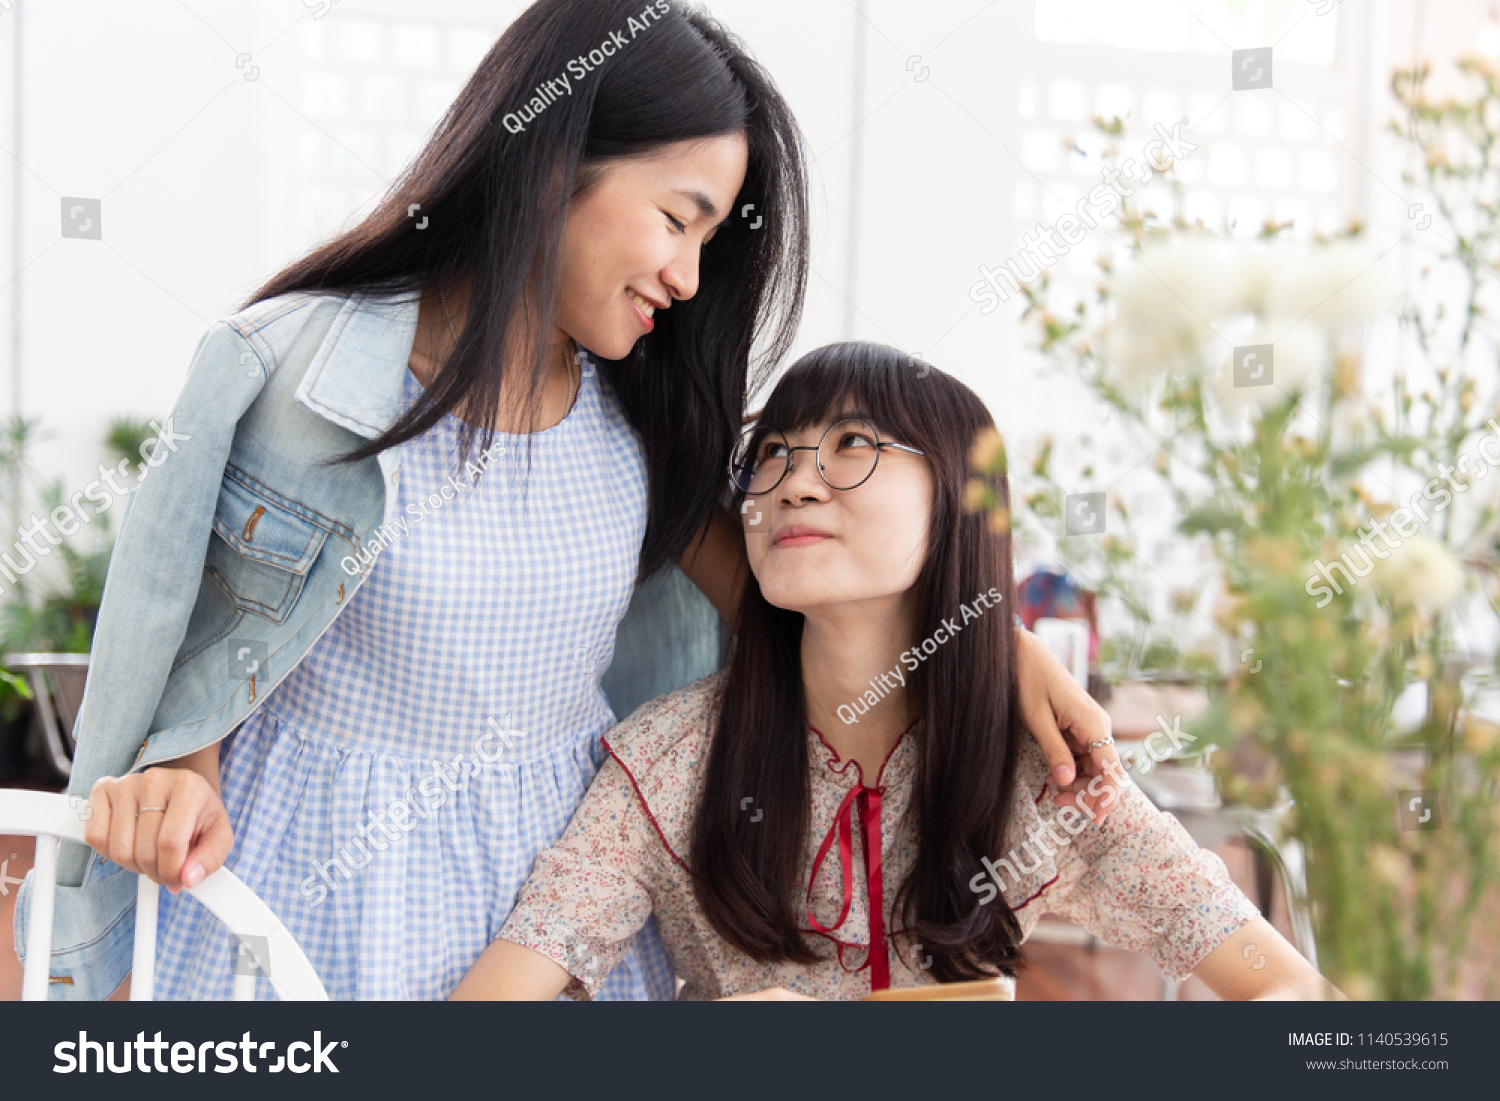 Two Asian Girl Teen Love Together Look At Each Other Friendship Or Lesbian Concept